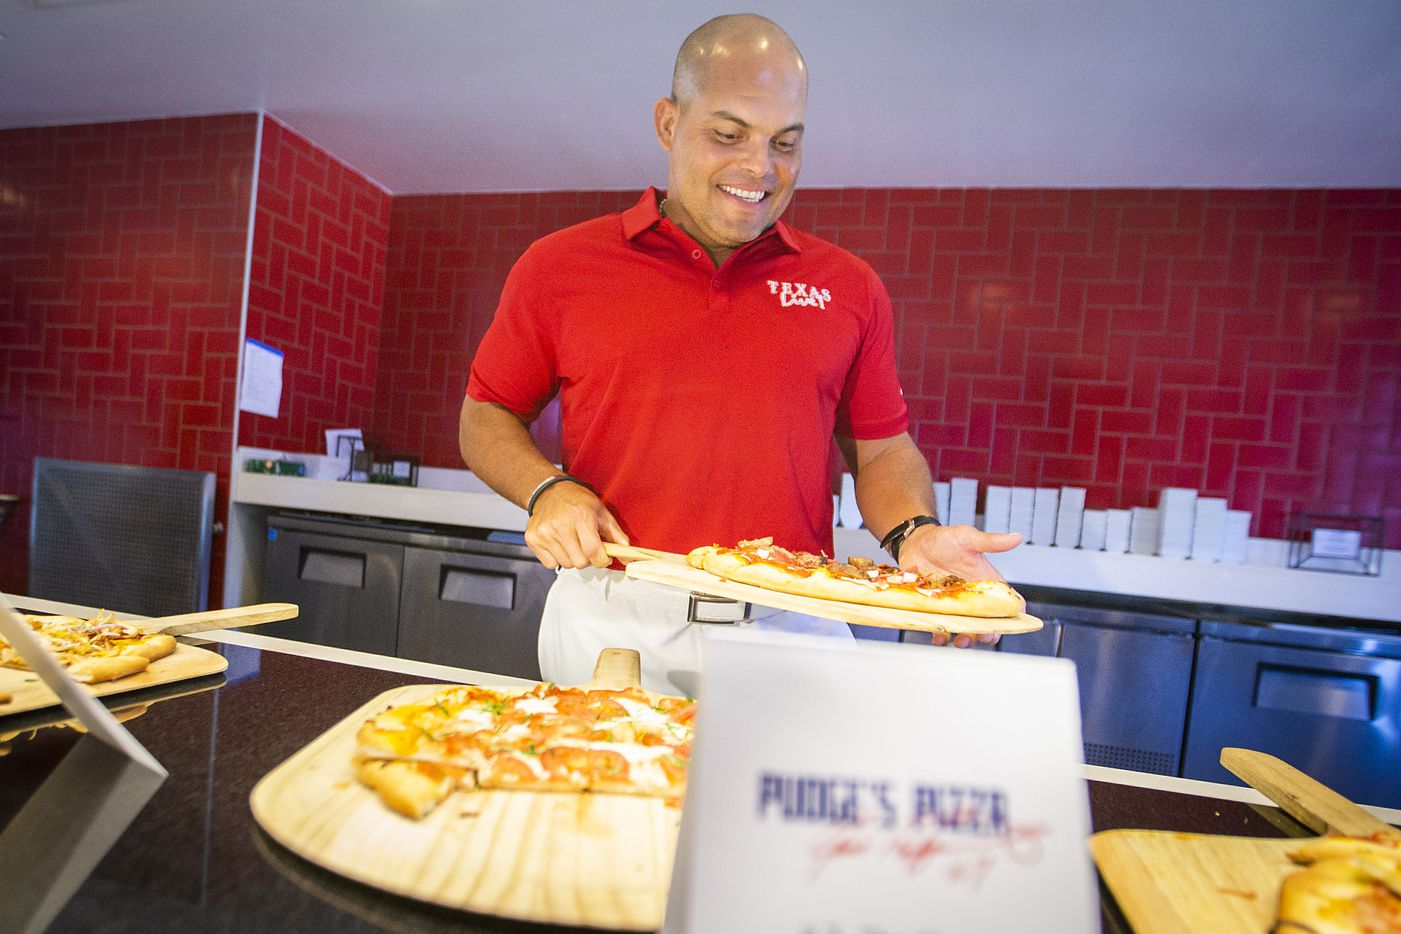 """Hall of Fame Texas Rangers catcher Ivan """"Pudge"""" Rodriguez showed off samples of pizza that will be offered at Pudge's Pizza, a  restaurant at the Texas Live development during a press event at Globe Life Park on Wednesday. He joins former Cowboys quarterback Troy Aikman, who will also have a venue at the center which is set to open in  August."""